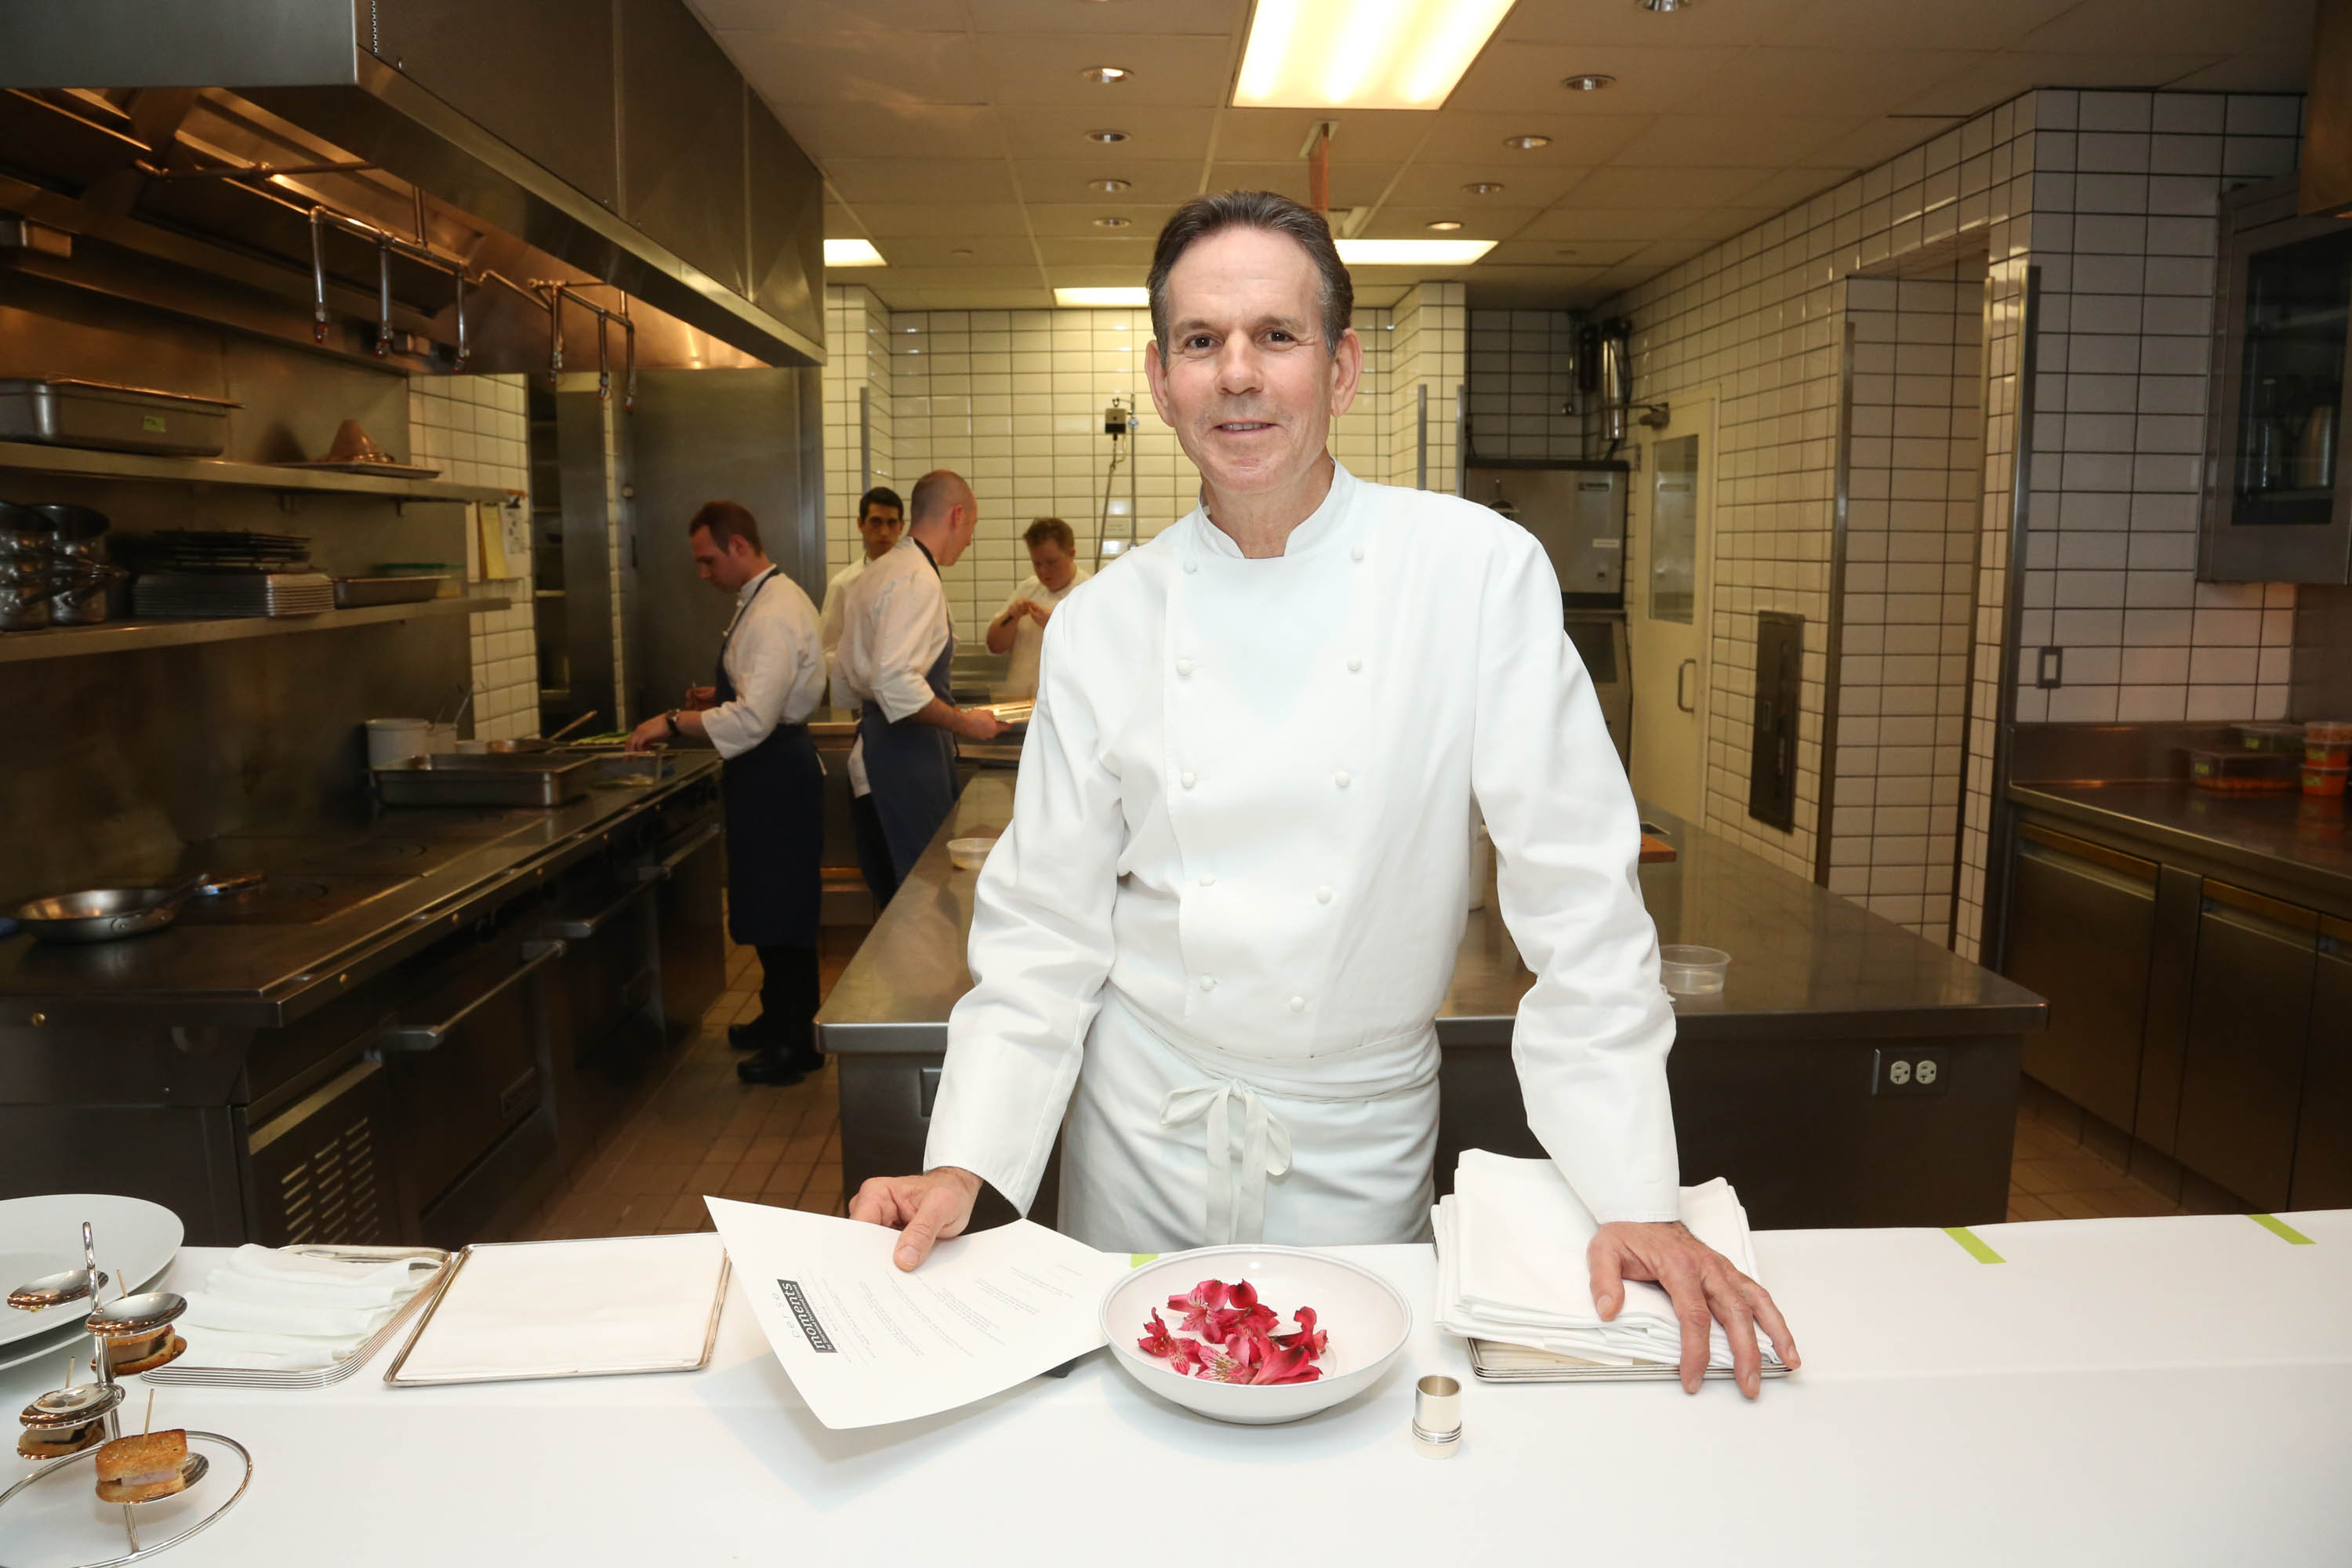 Starwood Preferred Guest Hosts Gourmet Experience Of A Lifetime With Chef Thomas Keller At Per Se For Luck SPG Members, Courtesy Of SPG Moments